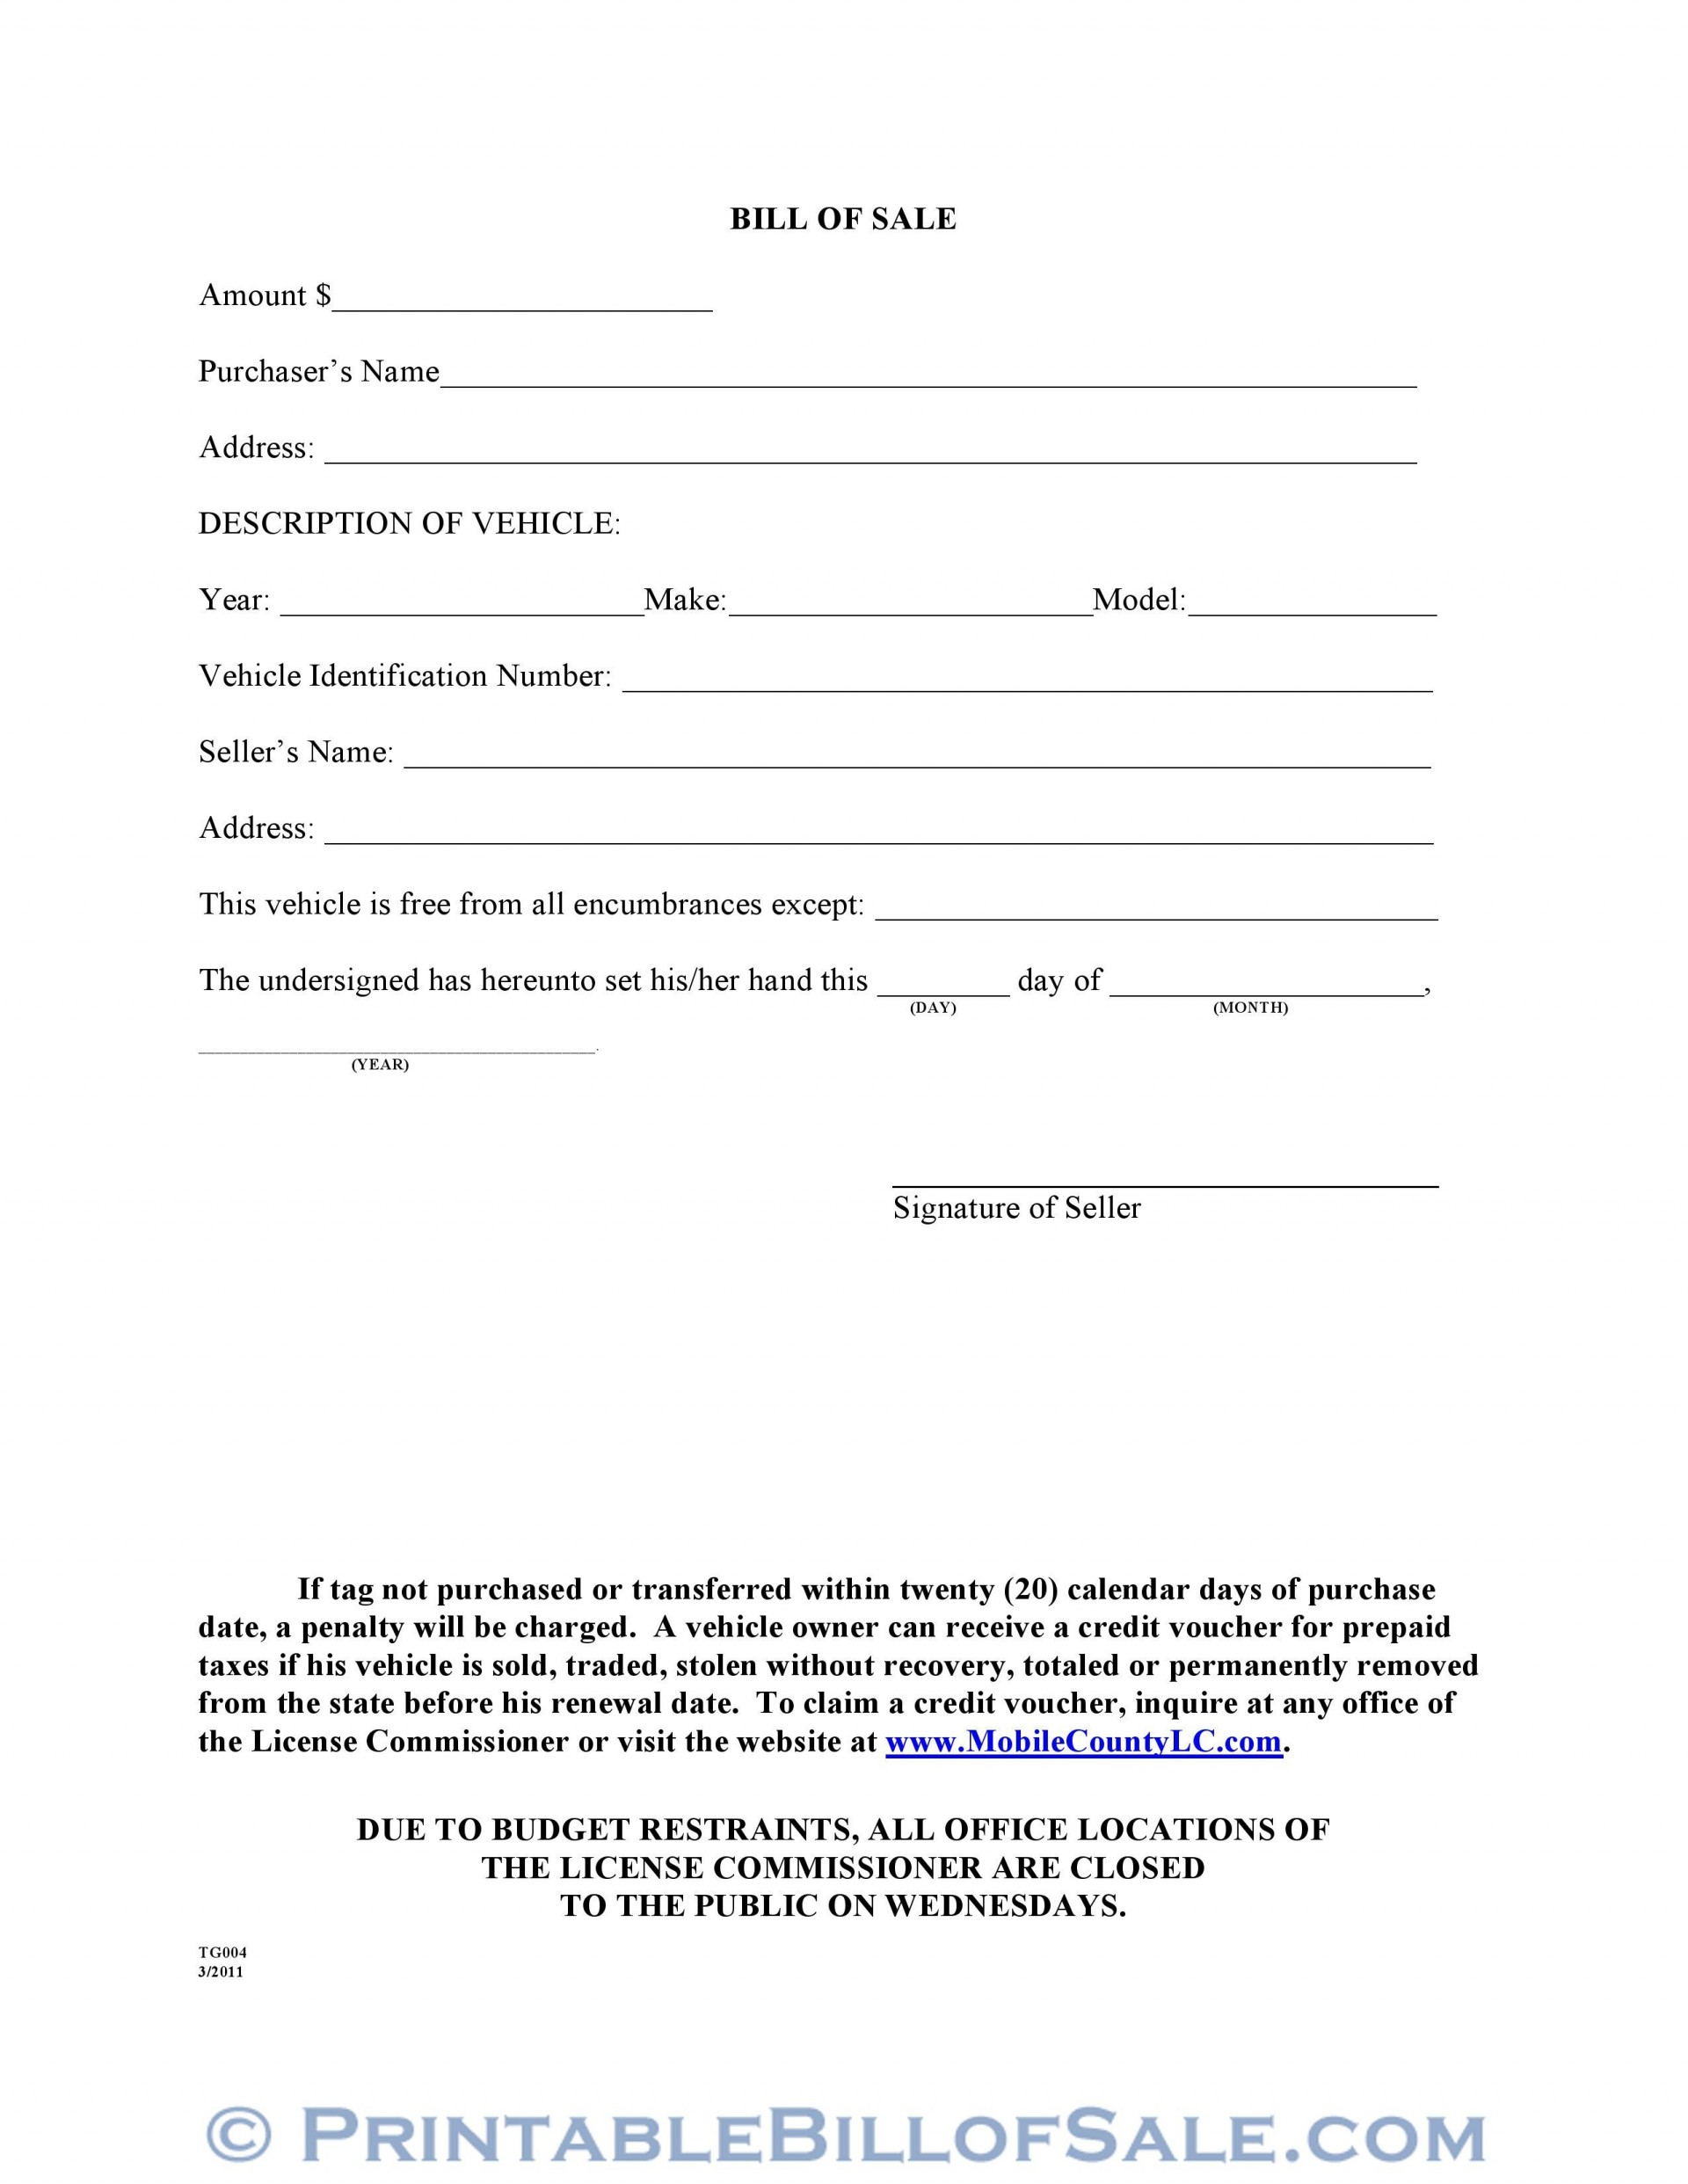 006 Awful Automobile Bill Of Sale Template High Def  Word Vehicle Fillable Pdf Texa With Notary1920